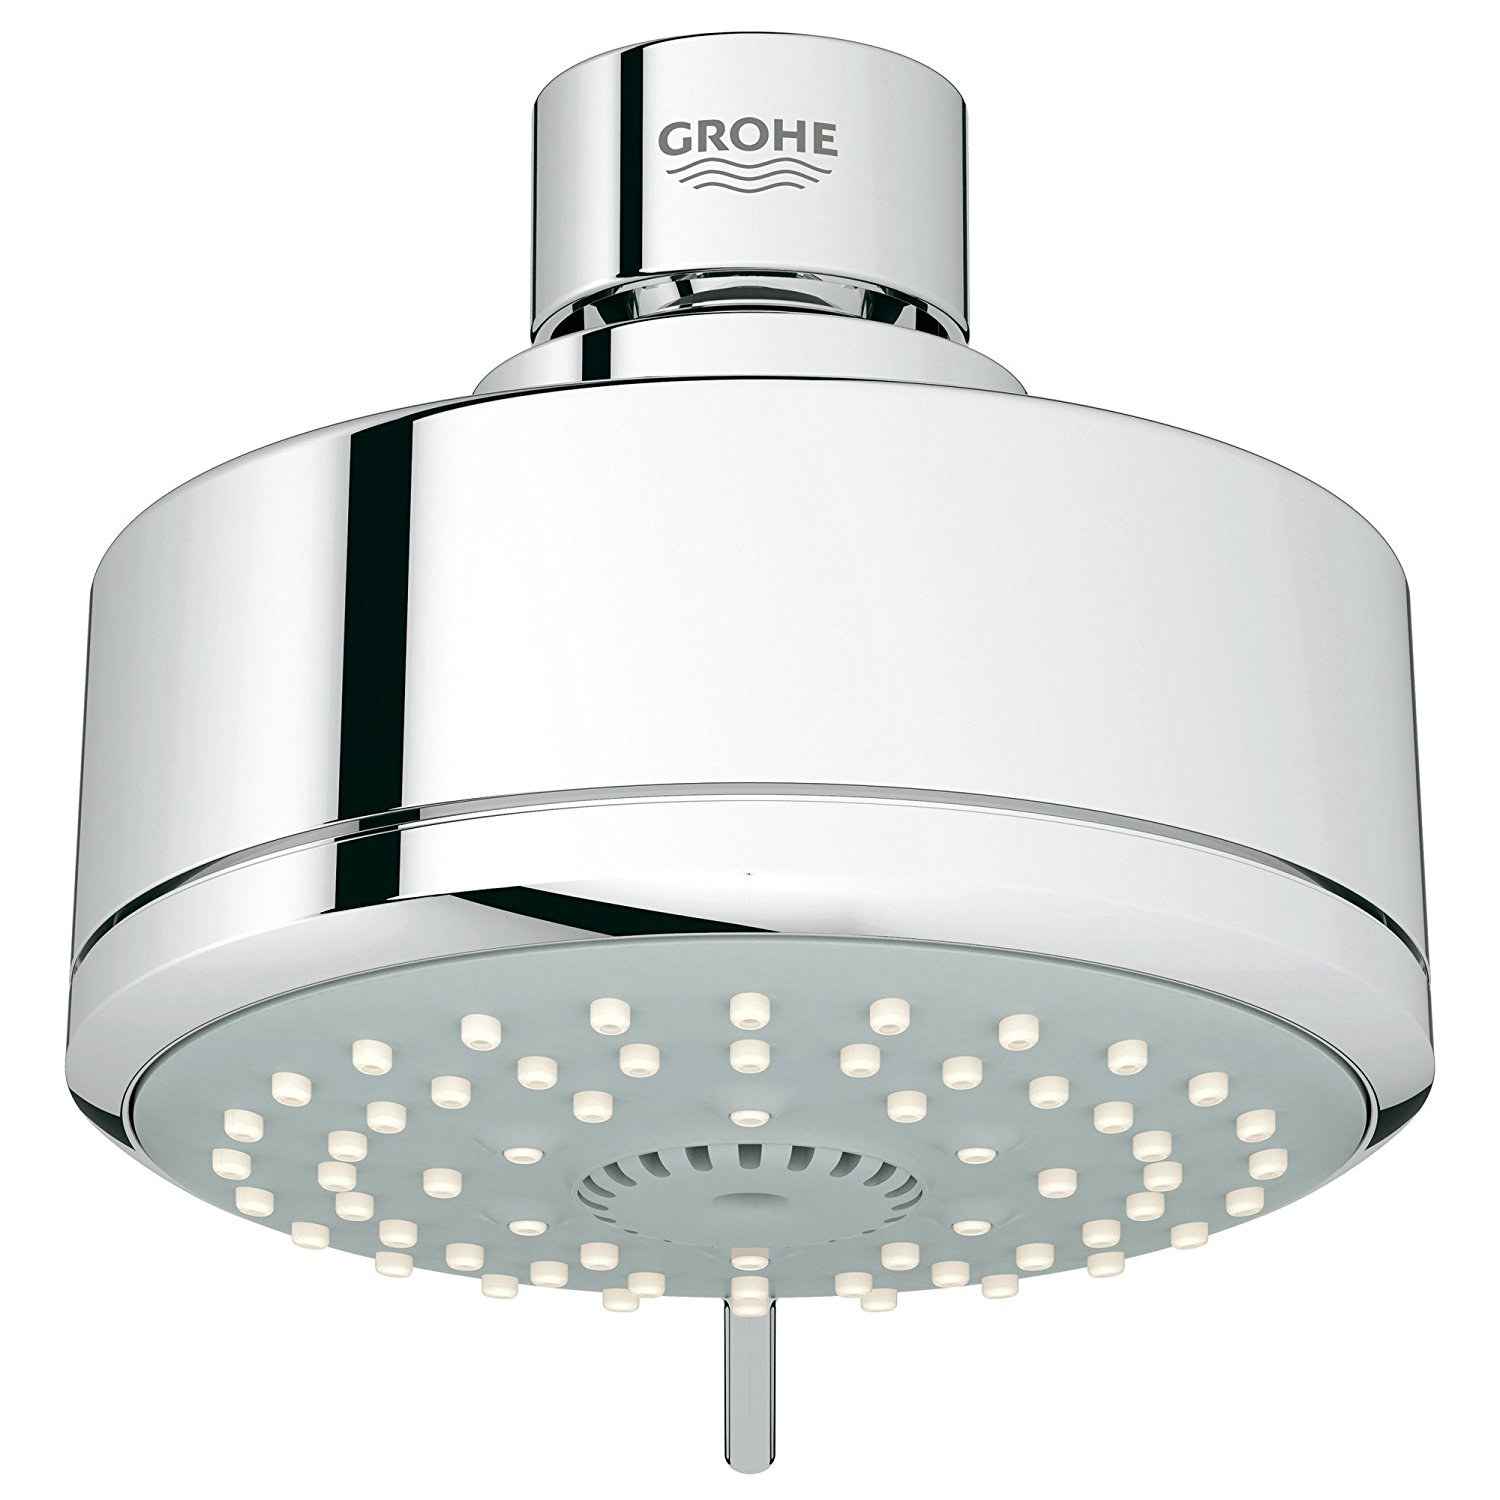 New Tempesta Cosmopolitan 100 4-Spray Showerhead